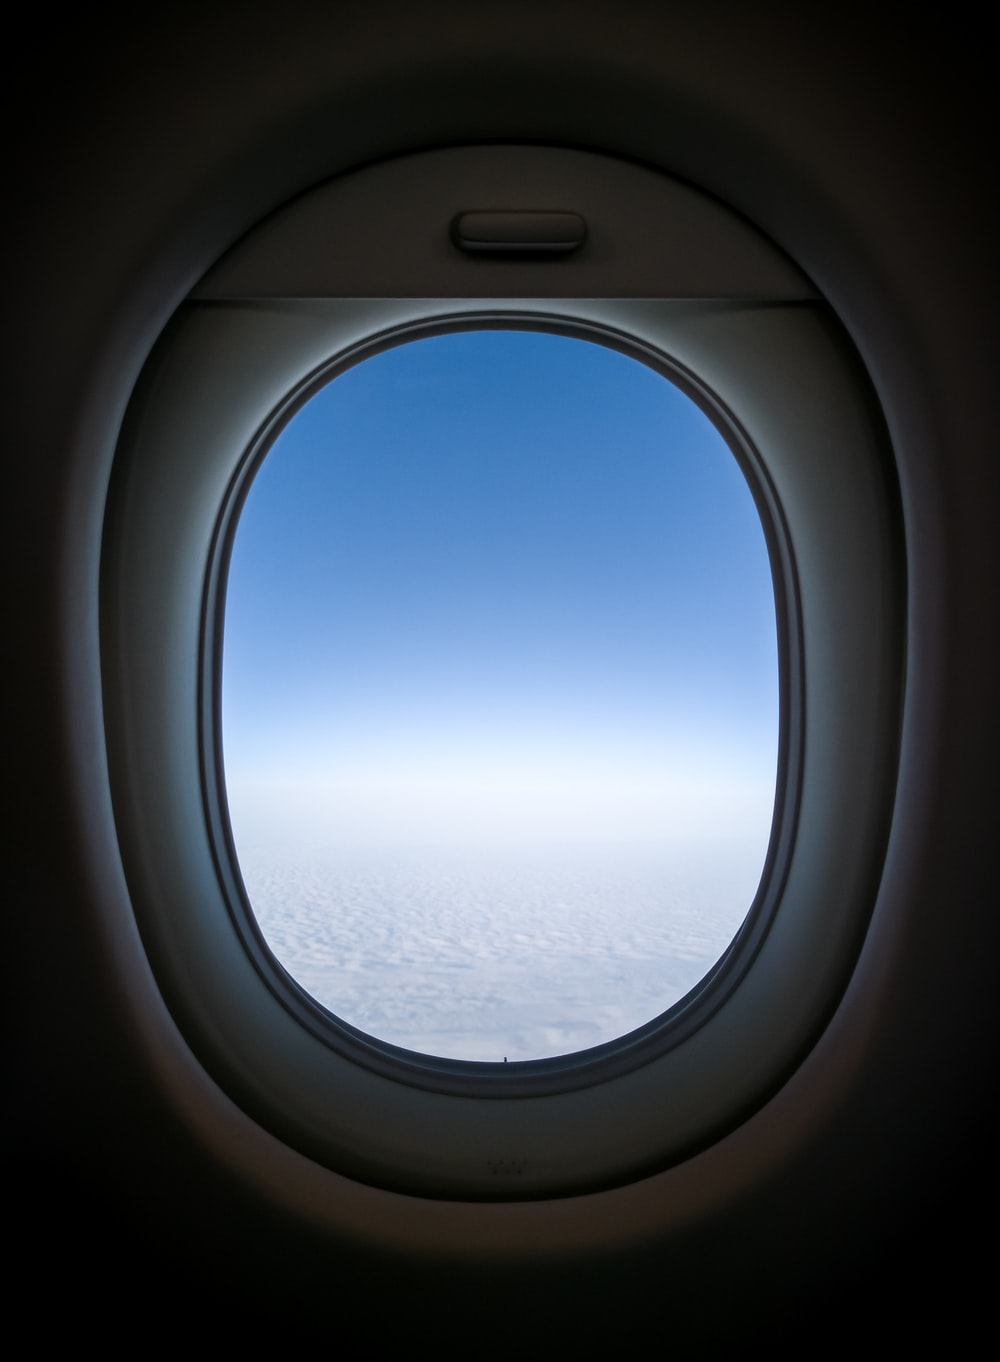 clear white skies from plane's window view